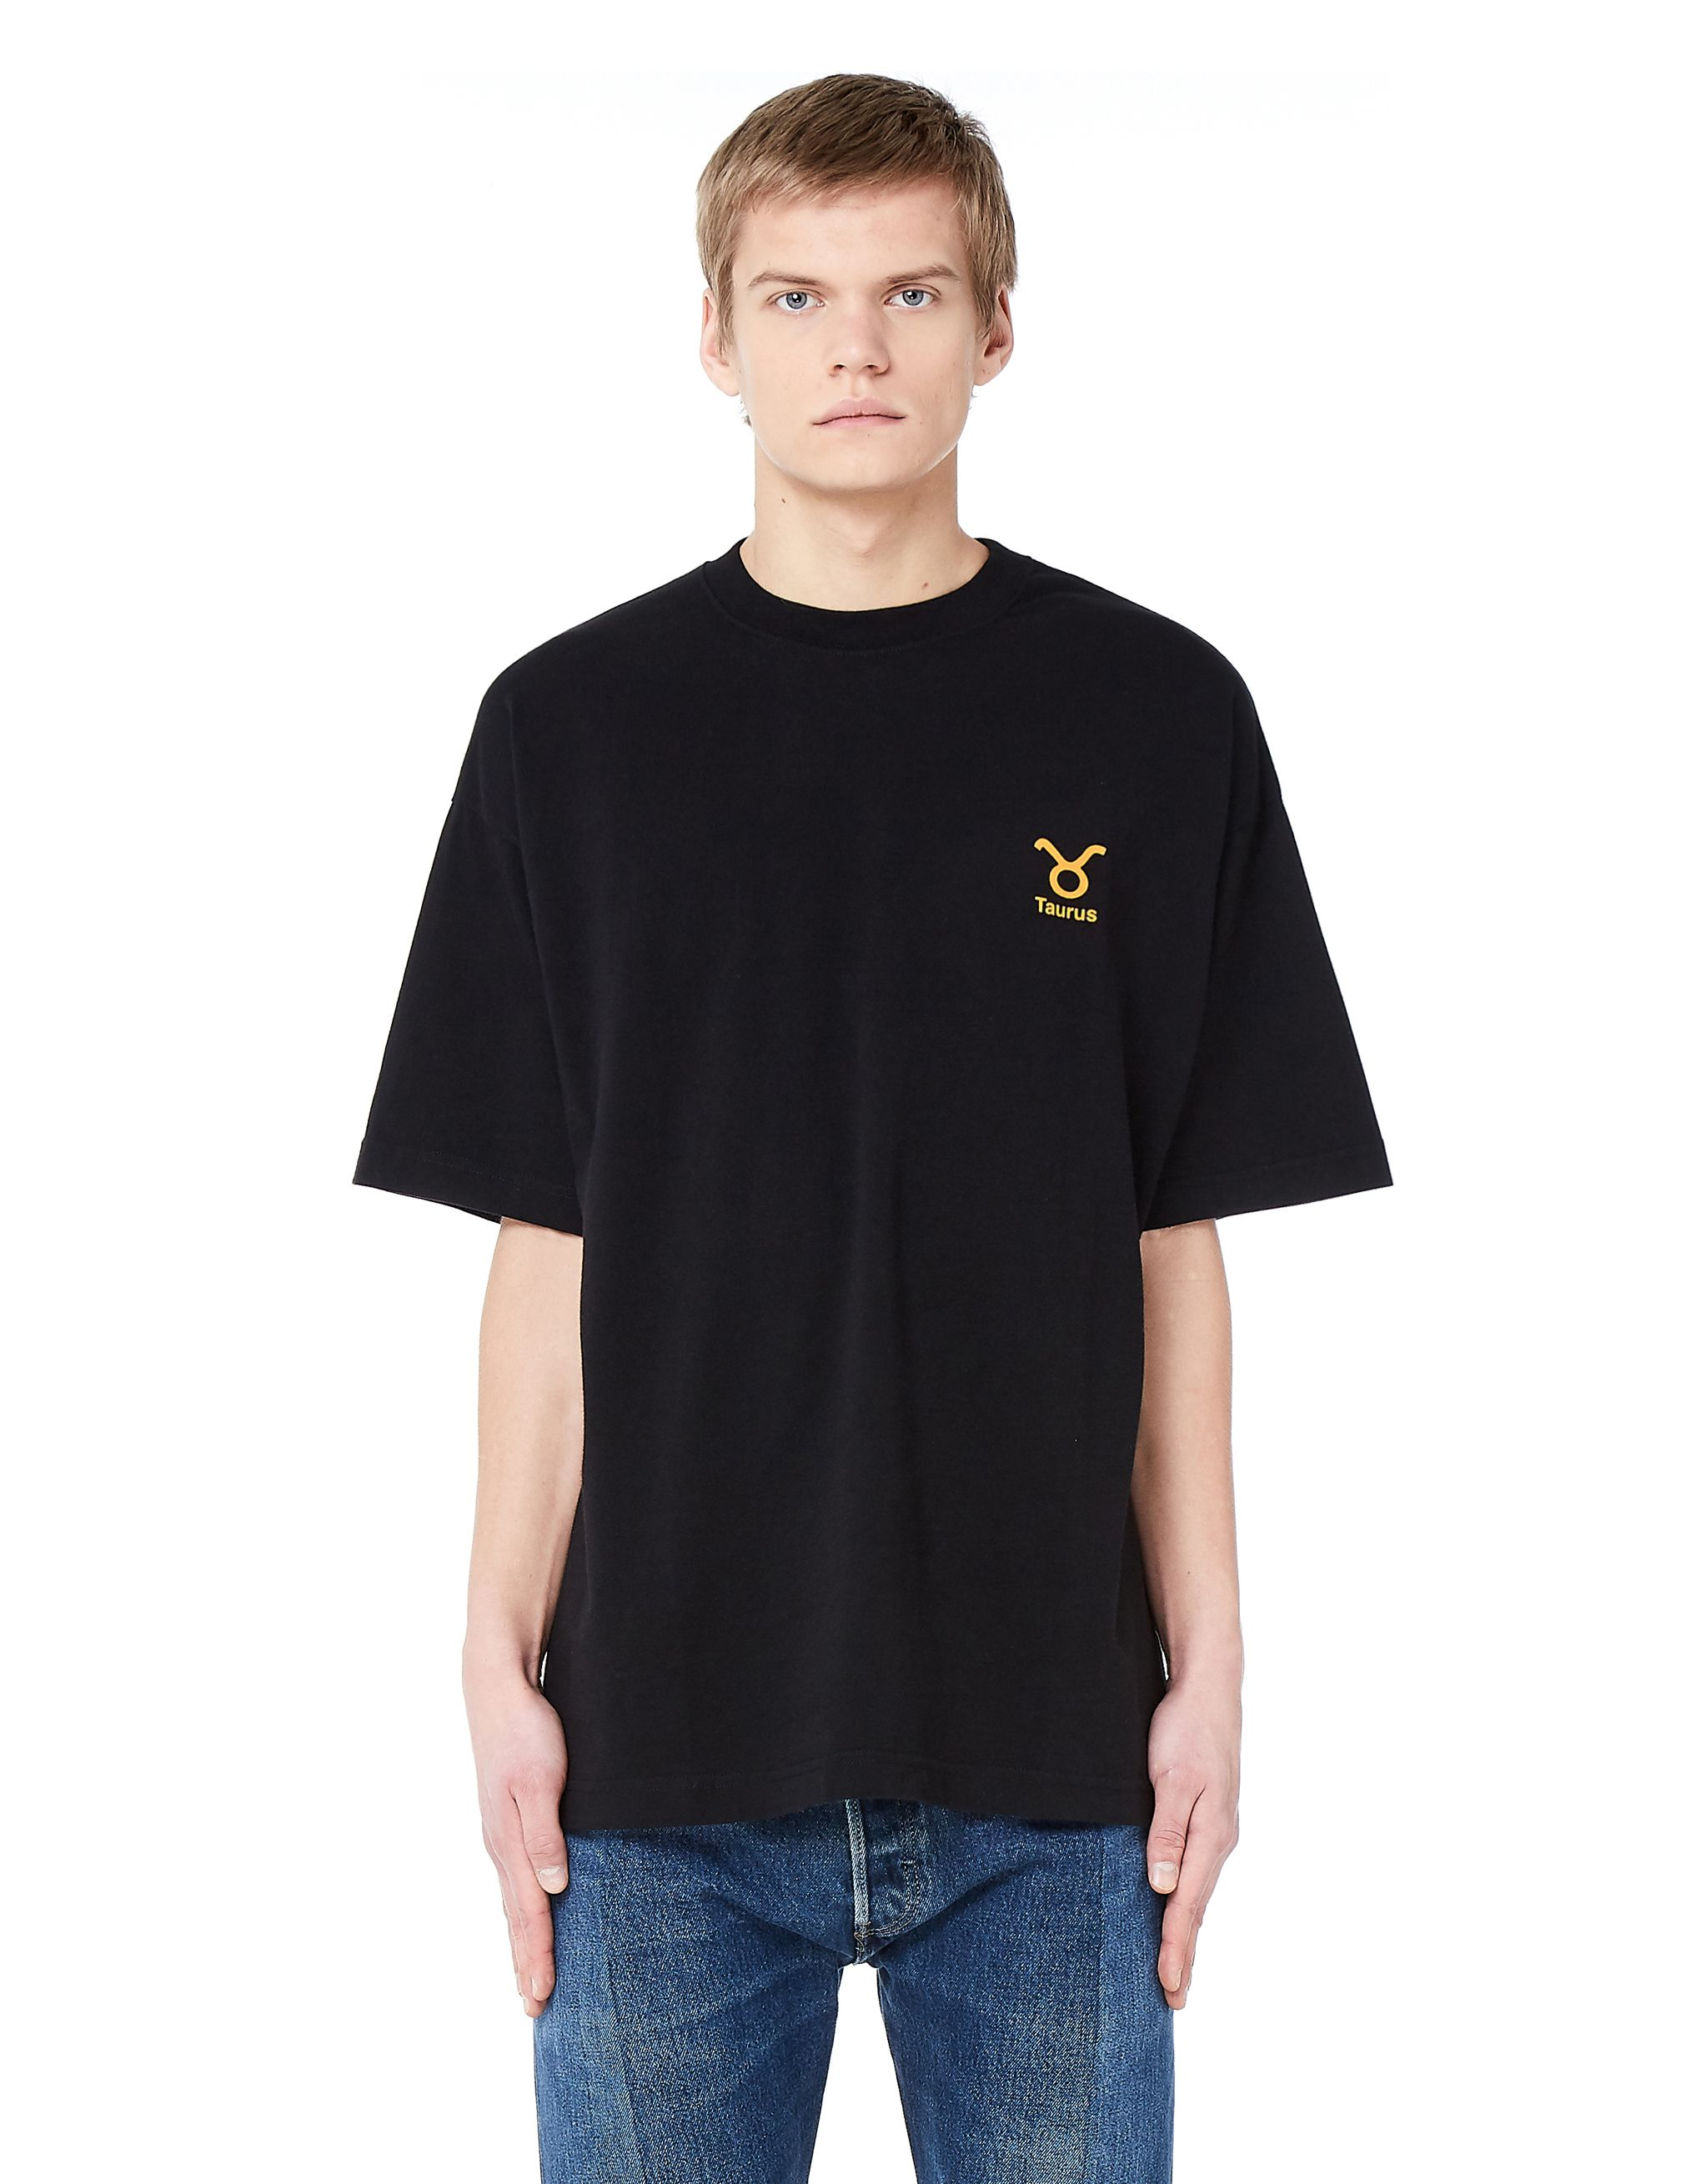 Inexpensive Online Deals For Sale Cancer Printed Cotton-jersey T-shirt VETEMENTS 100% Original For Sale Get Authentic Cheap Price nyQh4f2G